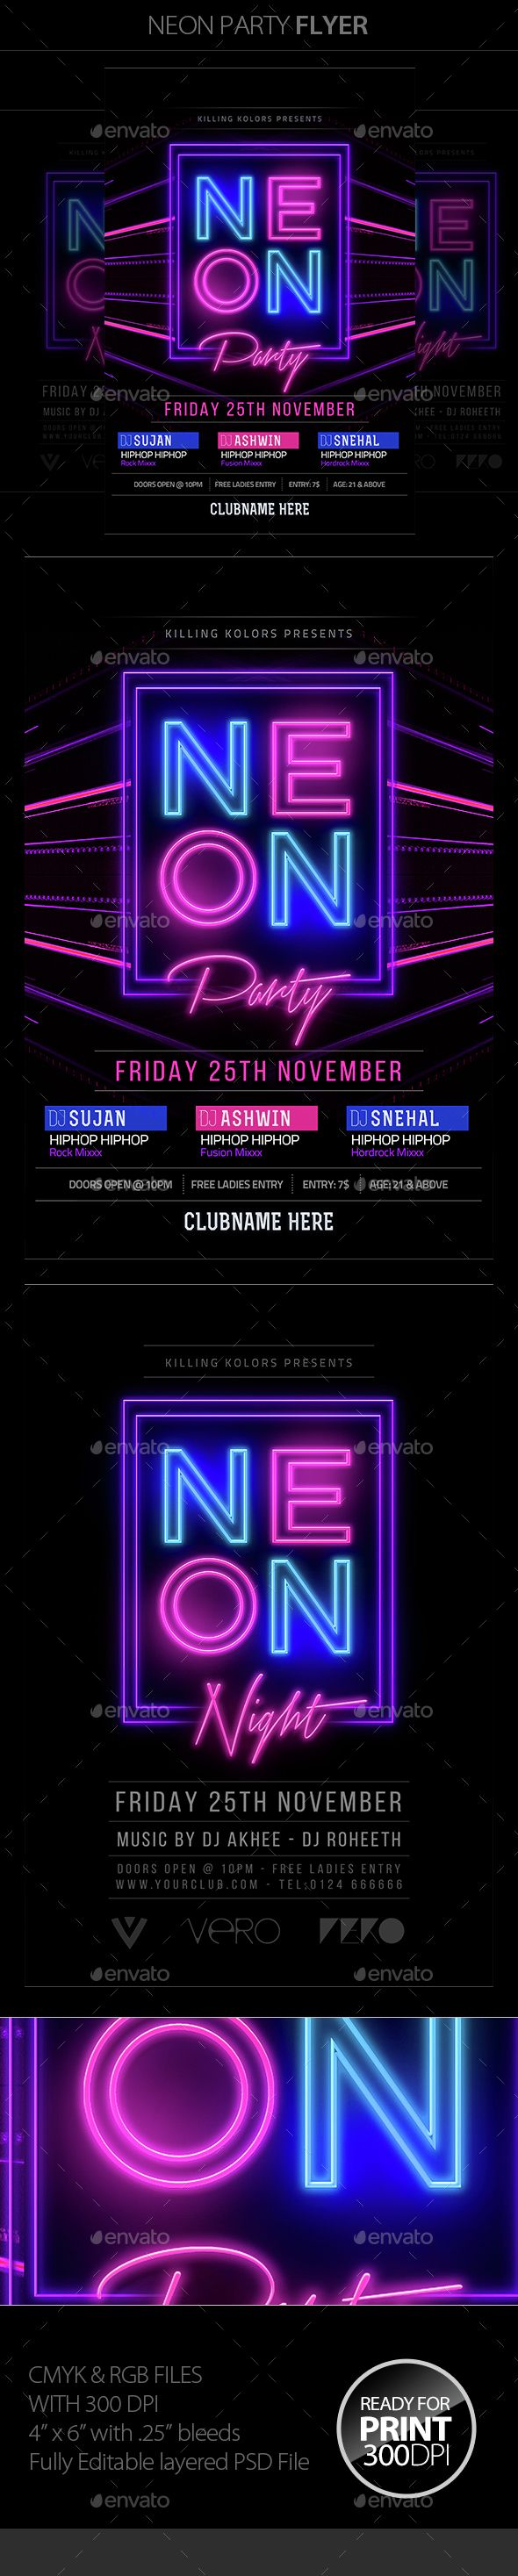 Neon Party Flyer  — PSD Template #poster #led • Download ➝ https://graphicriver.net/item/neon-party-flyer/15013116?ref=pxcr